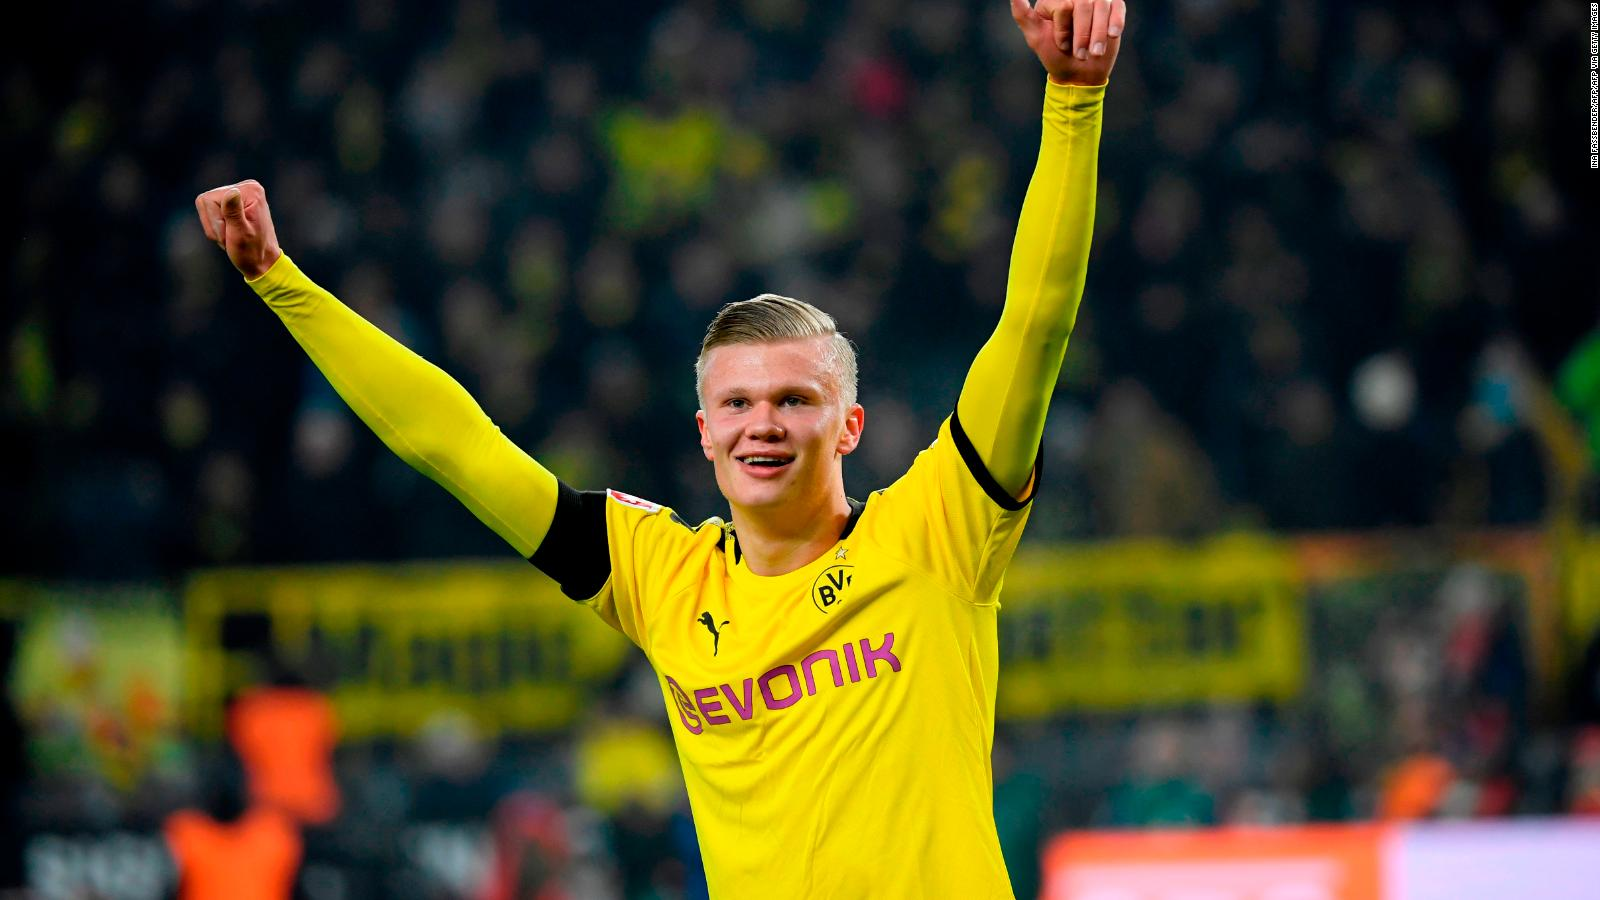 Erling Braut Haaland Teen Sensation Stuns Psg On Champions League Debut For Borussia Dortmund Cnn